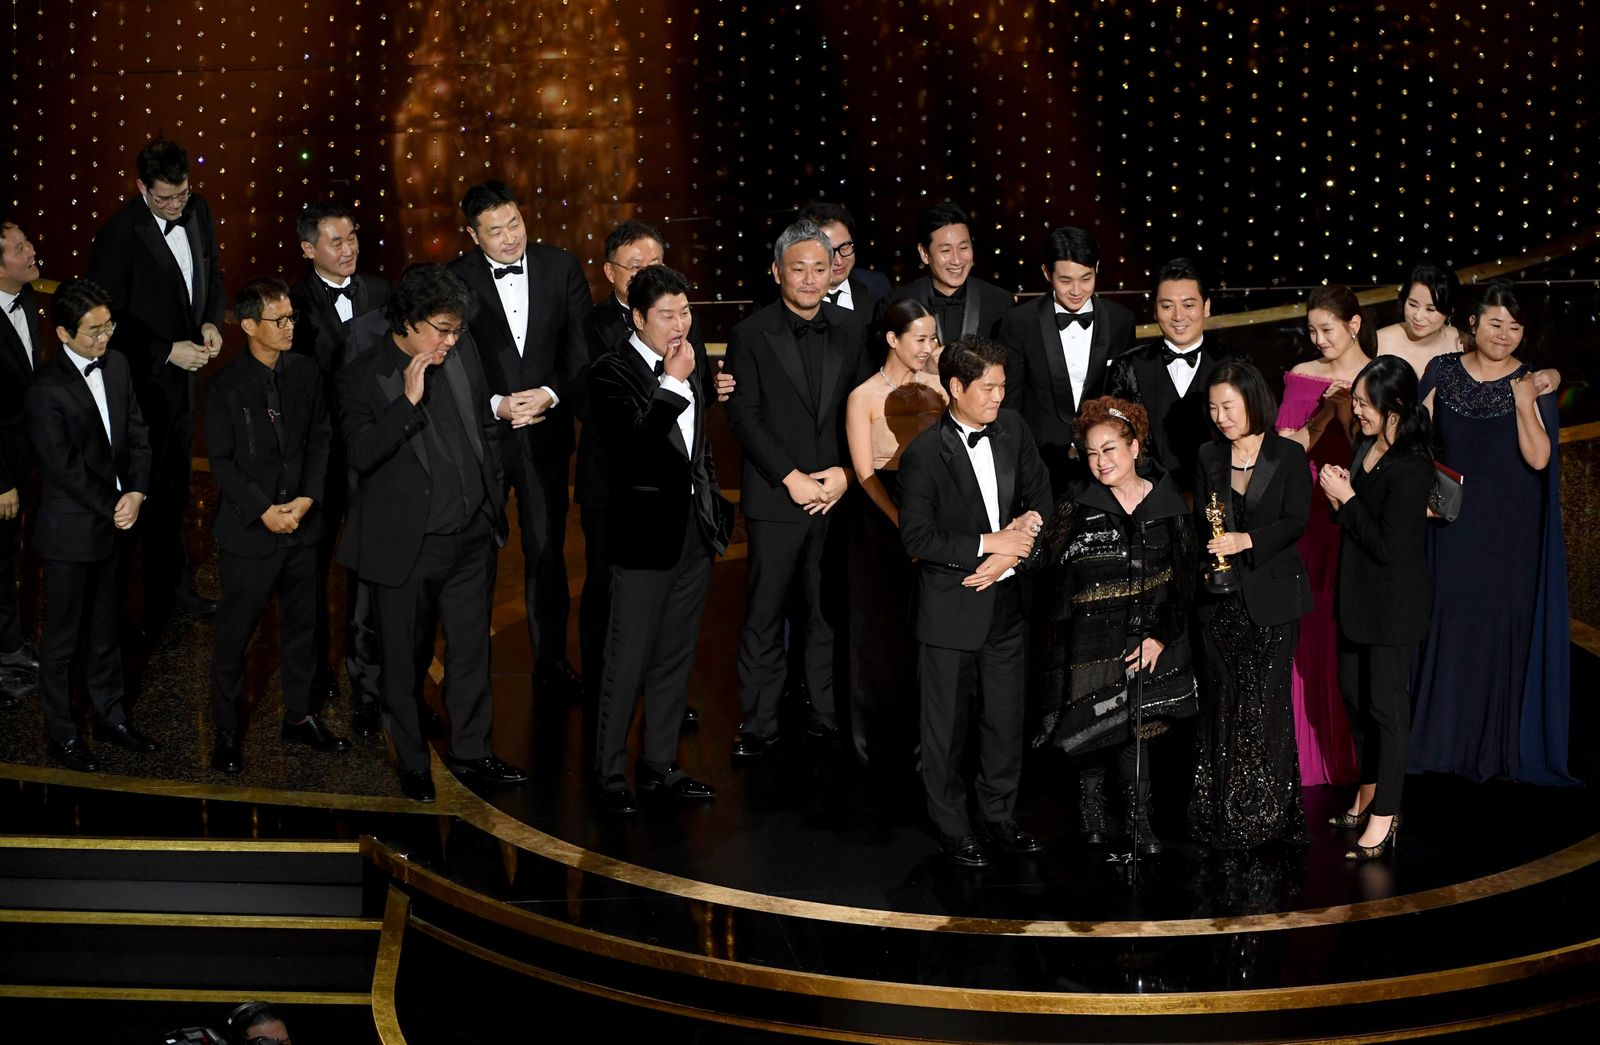 92nd Annual Academy Awards - Show